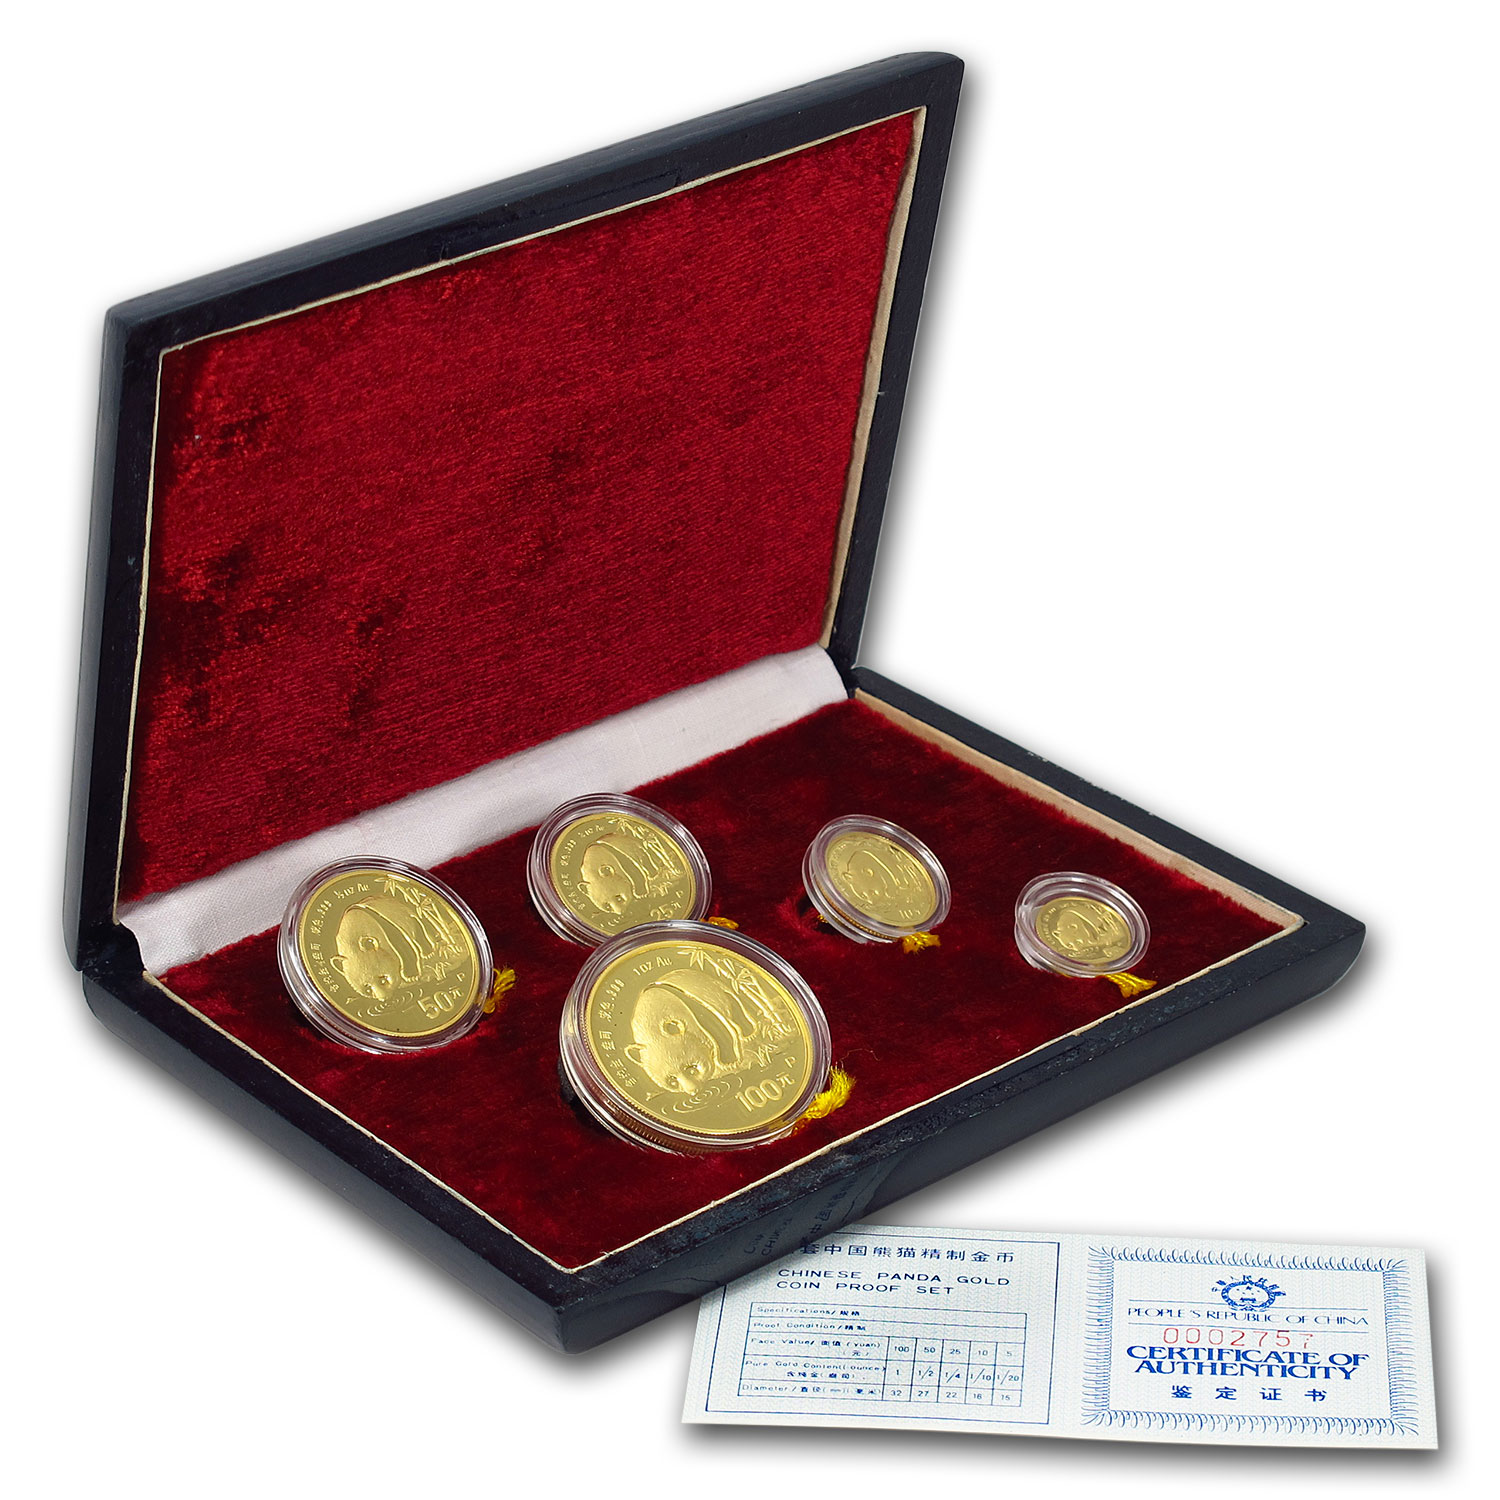 1987 China 5-Coin Gold Panda Proof Set (In Original Box)